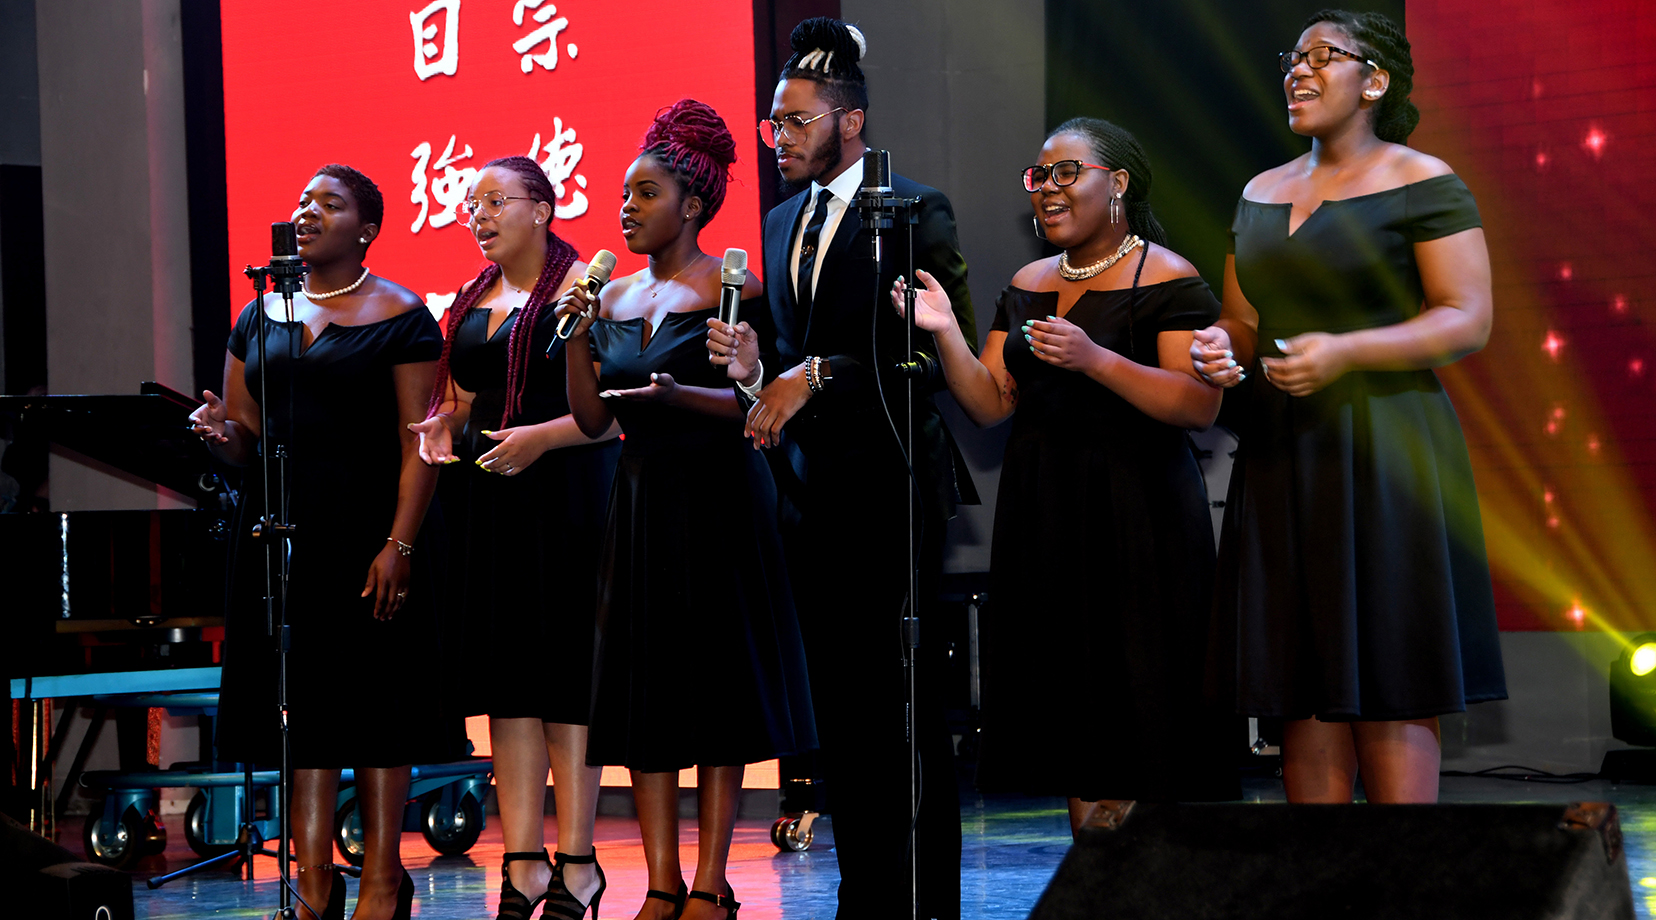 """DSU Gospel Choir members Kiyah Mewborn, Shaé Ross, Ashlyn Moore, Darrell Miller, Niraha Traylor and Jevana Lambert give a powerful performance of the song """"My God is an Awesome God."""" Not pictured are pianist Manuel Scott and drummer Nasir Carter Stokes."""